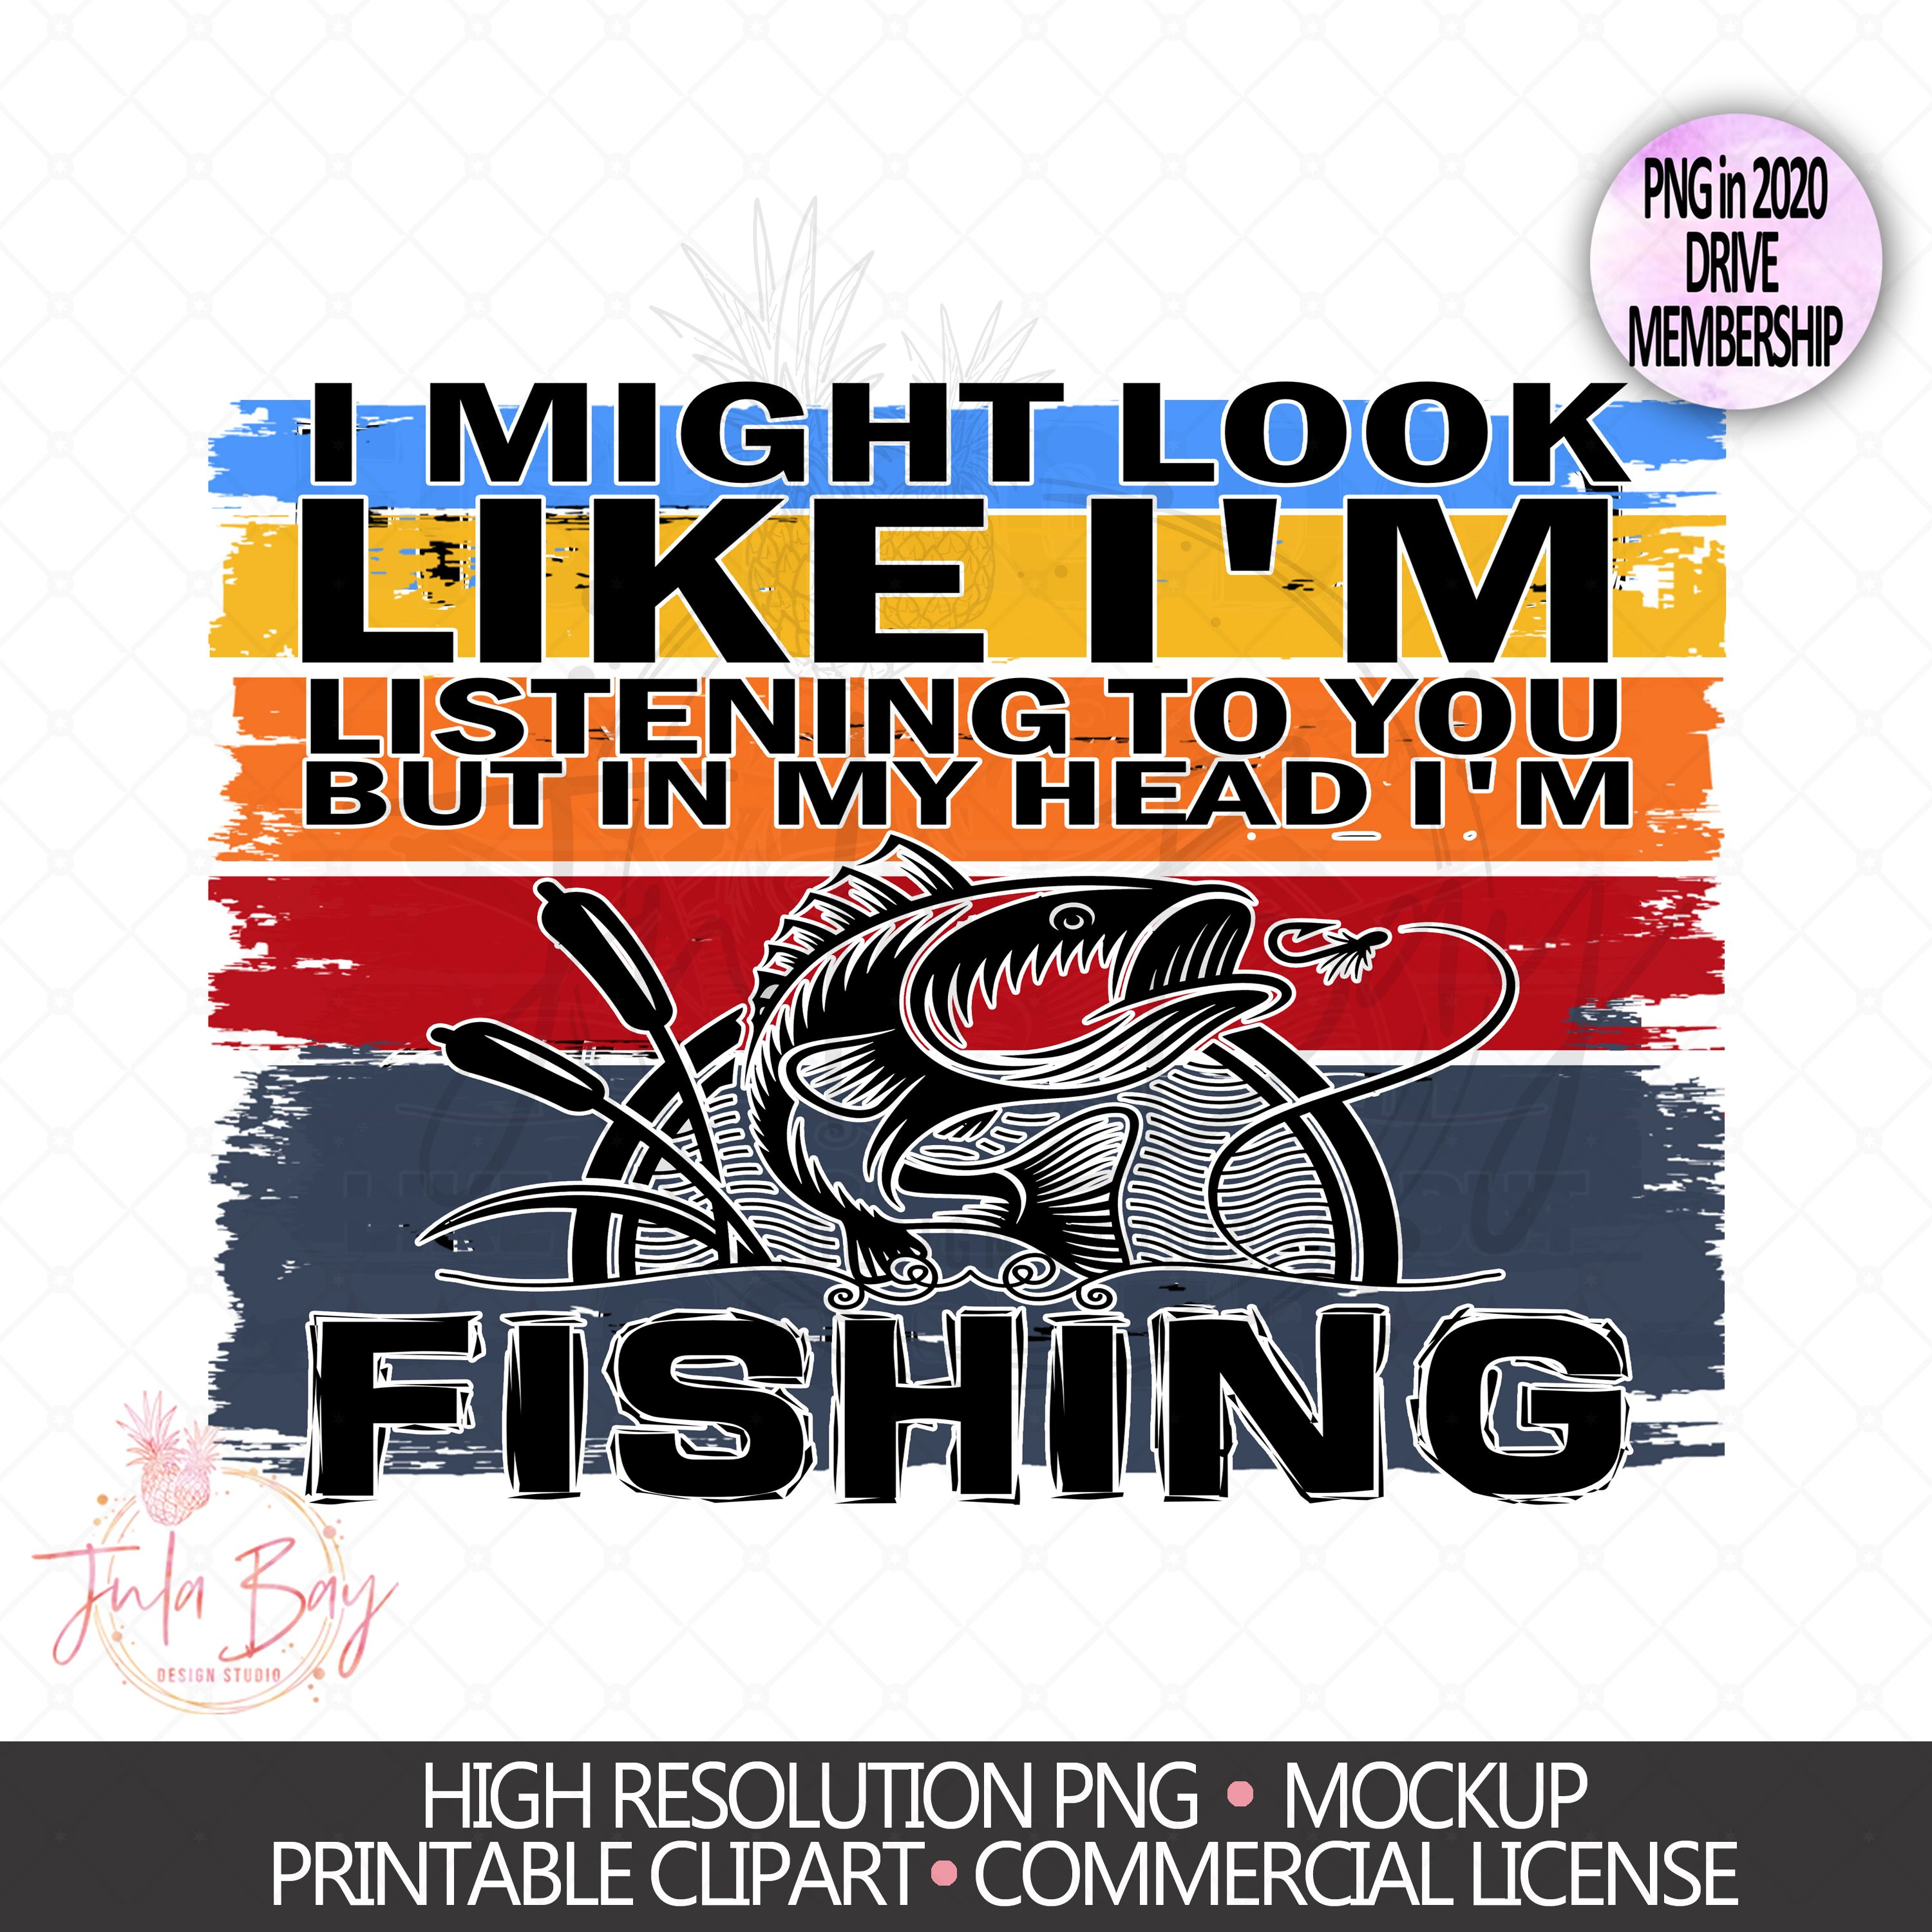 Download I Might Look Like I M Listening To You But In My Head I M Fishing Clipart Clip Art Fish Svg Design Cut File For Shirt Mug Sublimation Vinyl Art Collectibles Prints 330 Co Il